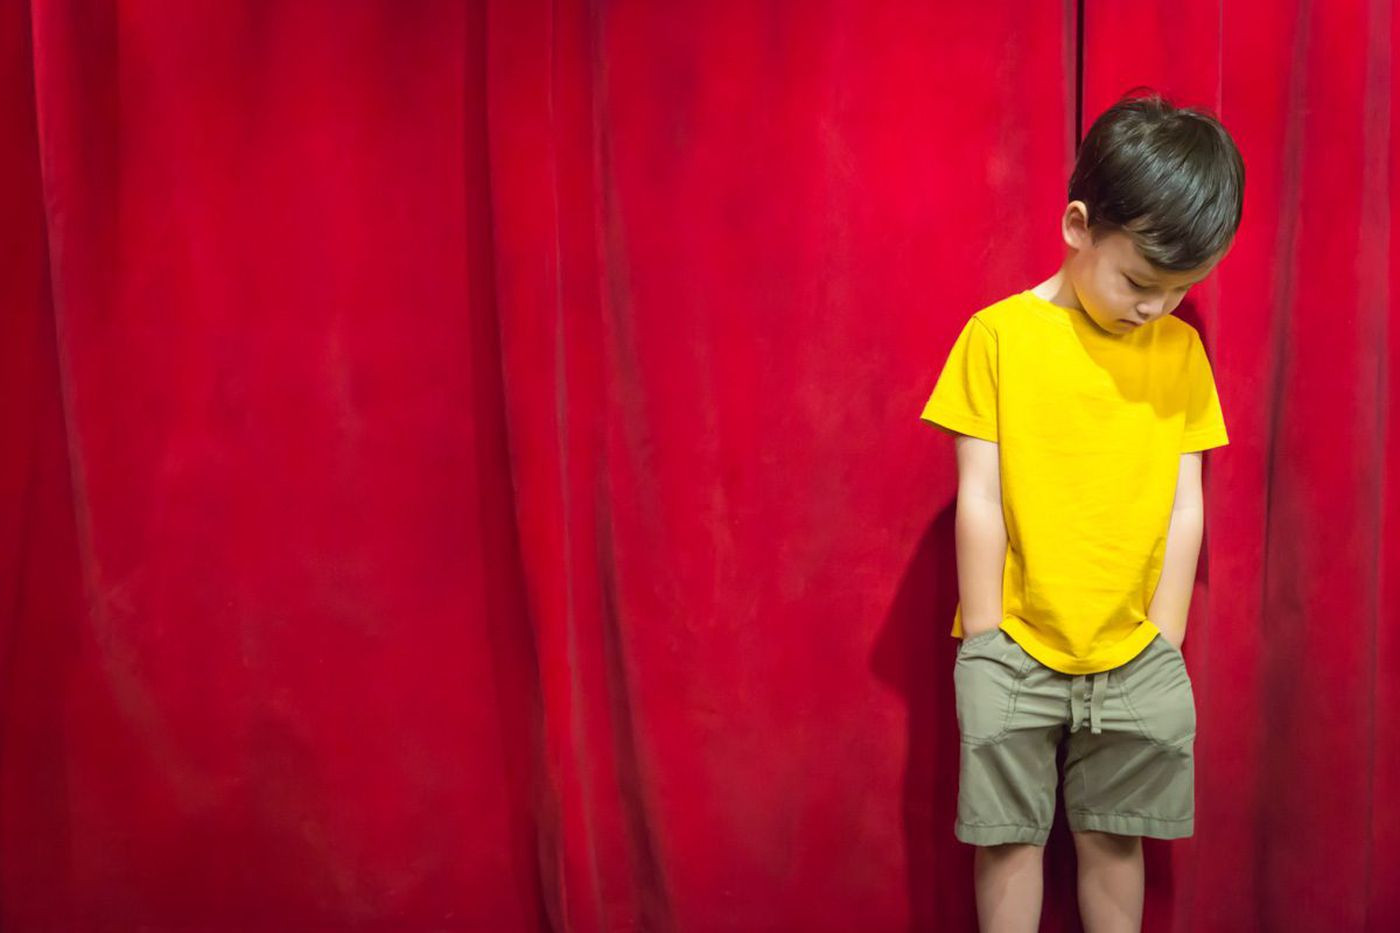 Study: Overstimulation, not indifference, makes eye contact hard for people with autism